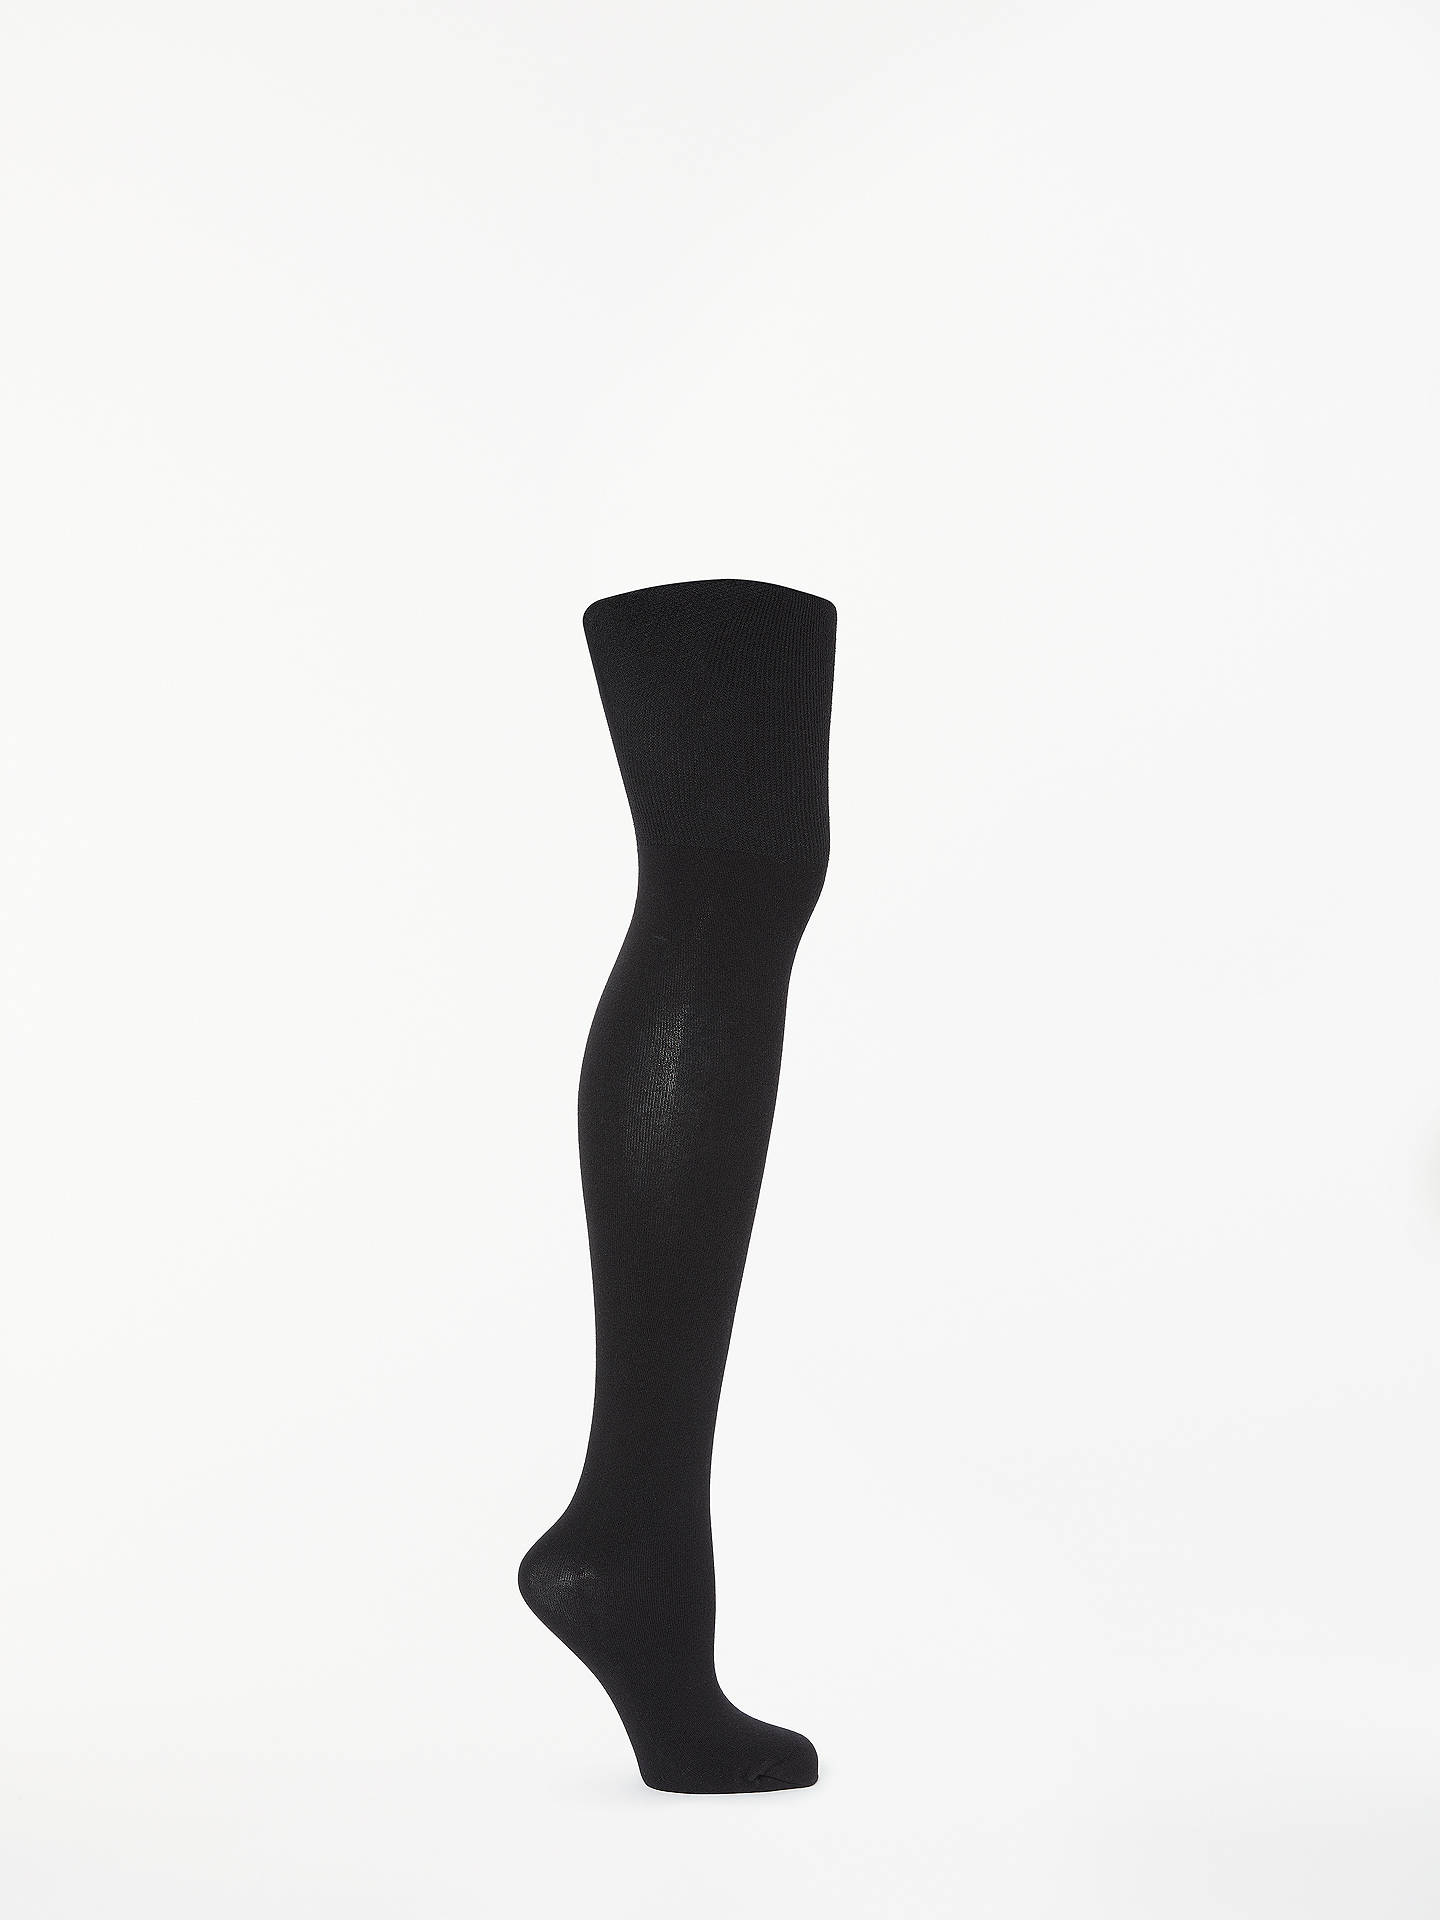 BuyJohn Lewis & Partners Egyptian Cotton Blend Bodyshaper Opaque Tights, Black, S Online at johnlewis.com